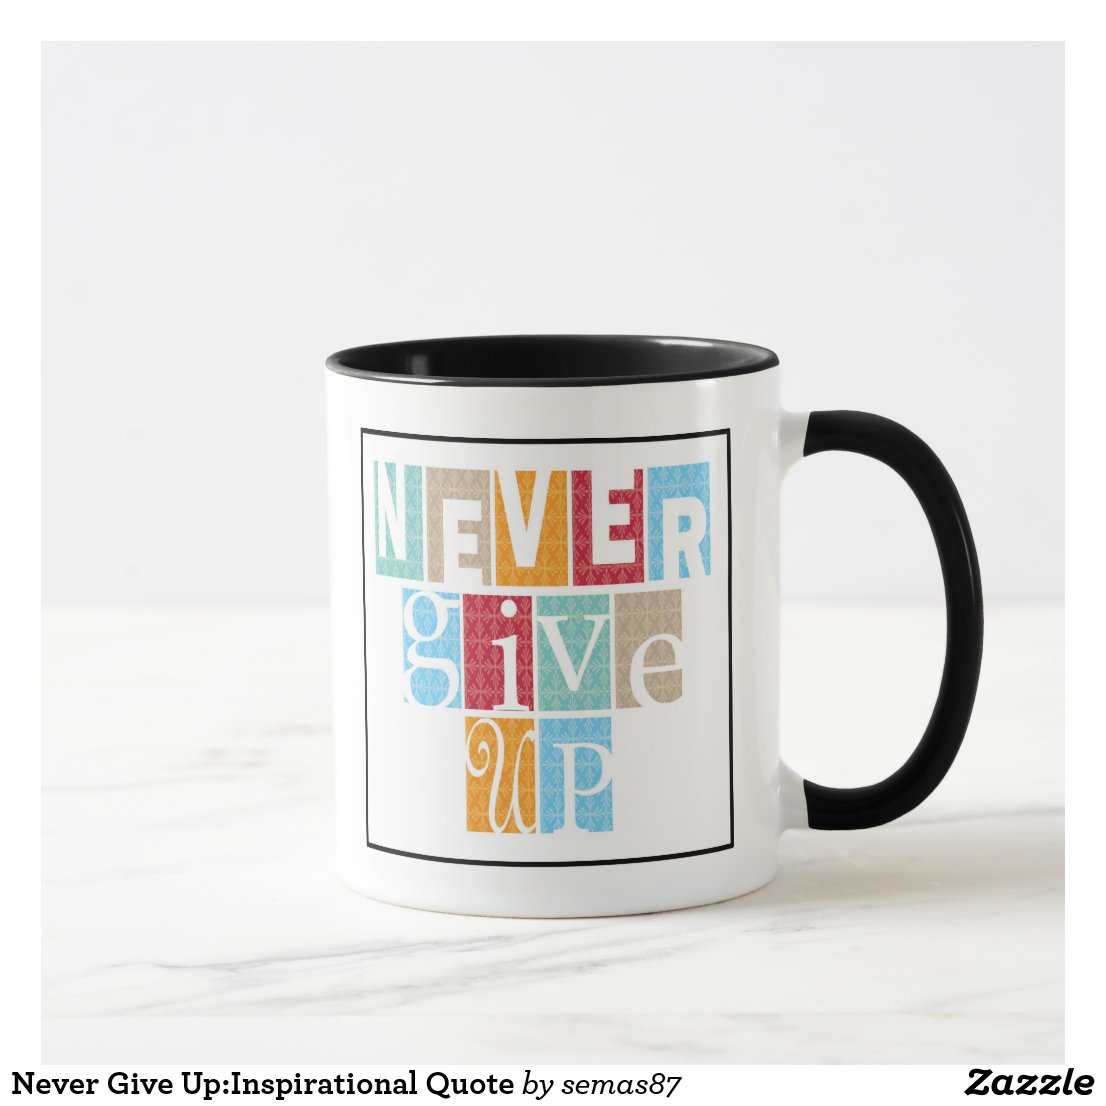 Never Give Up:Inspirational Quote Mug